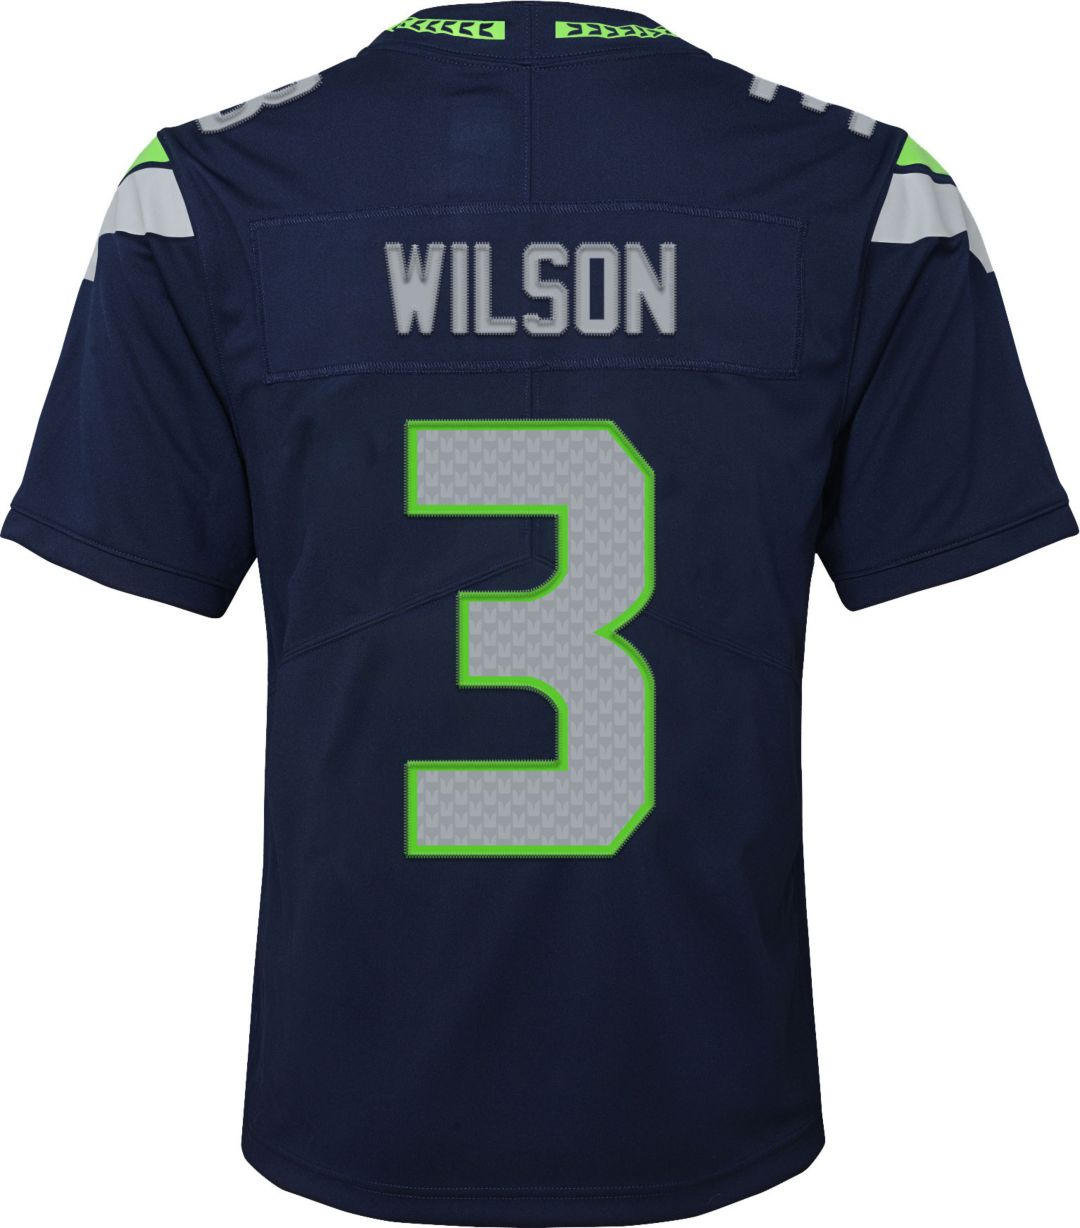 8d9f546ff16 Nike Youth Home Limited Jersey Seattle Seahawks Russell Wilson #3 ...